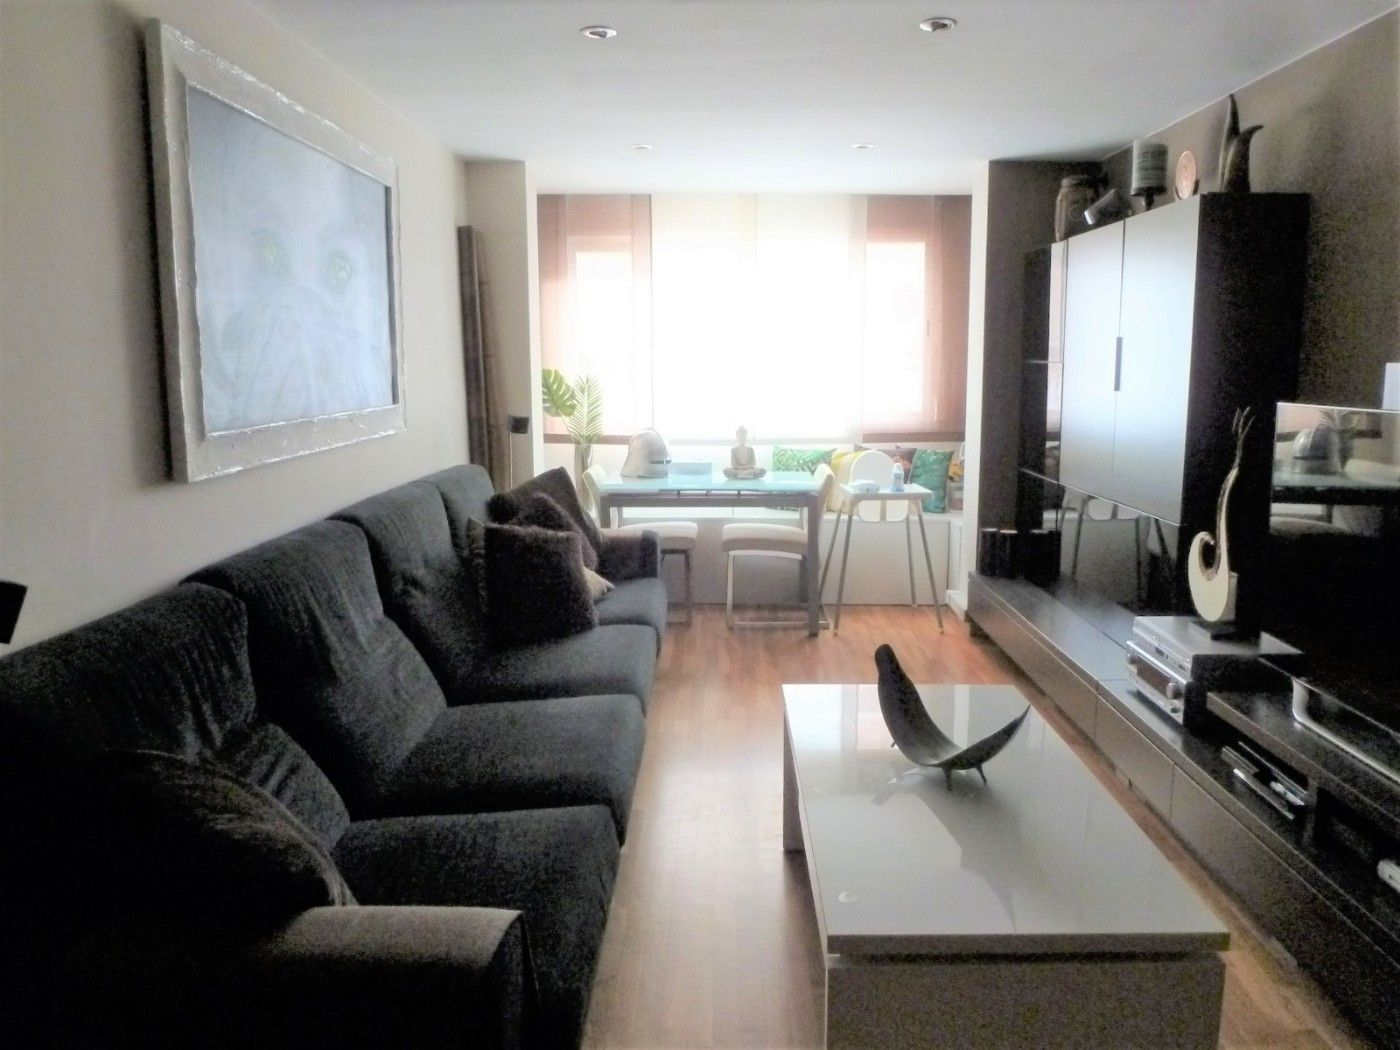 Flat in Carrer Gran Capita, 30